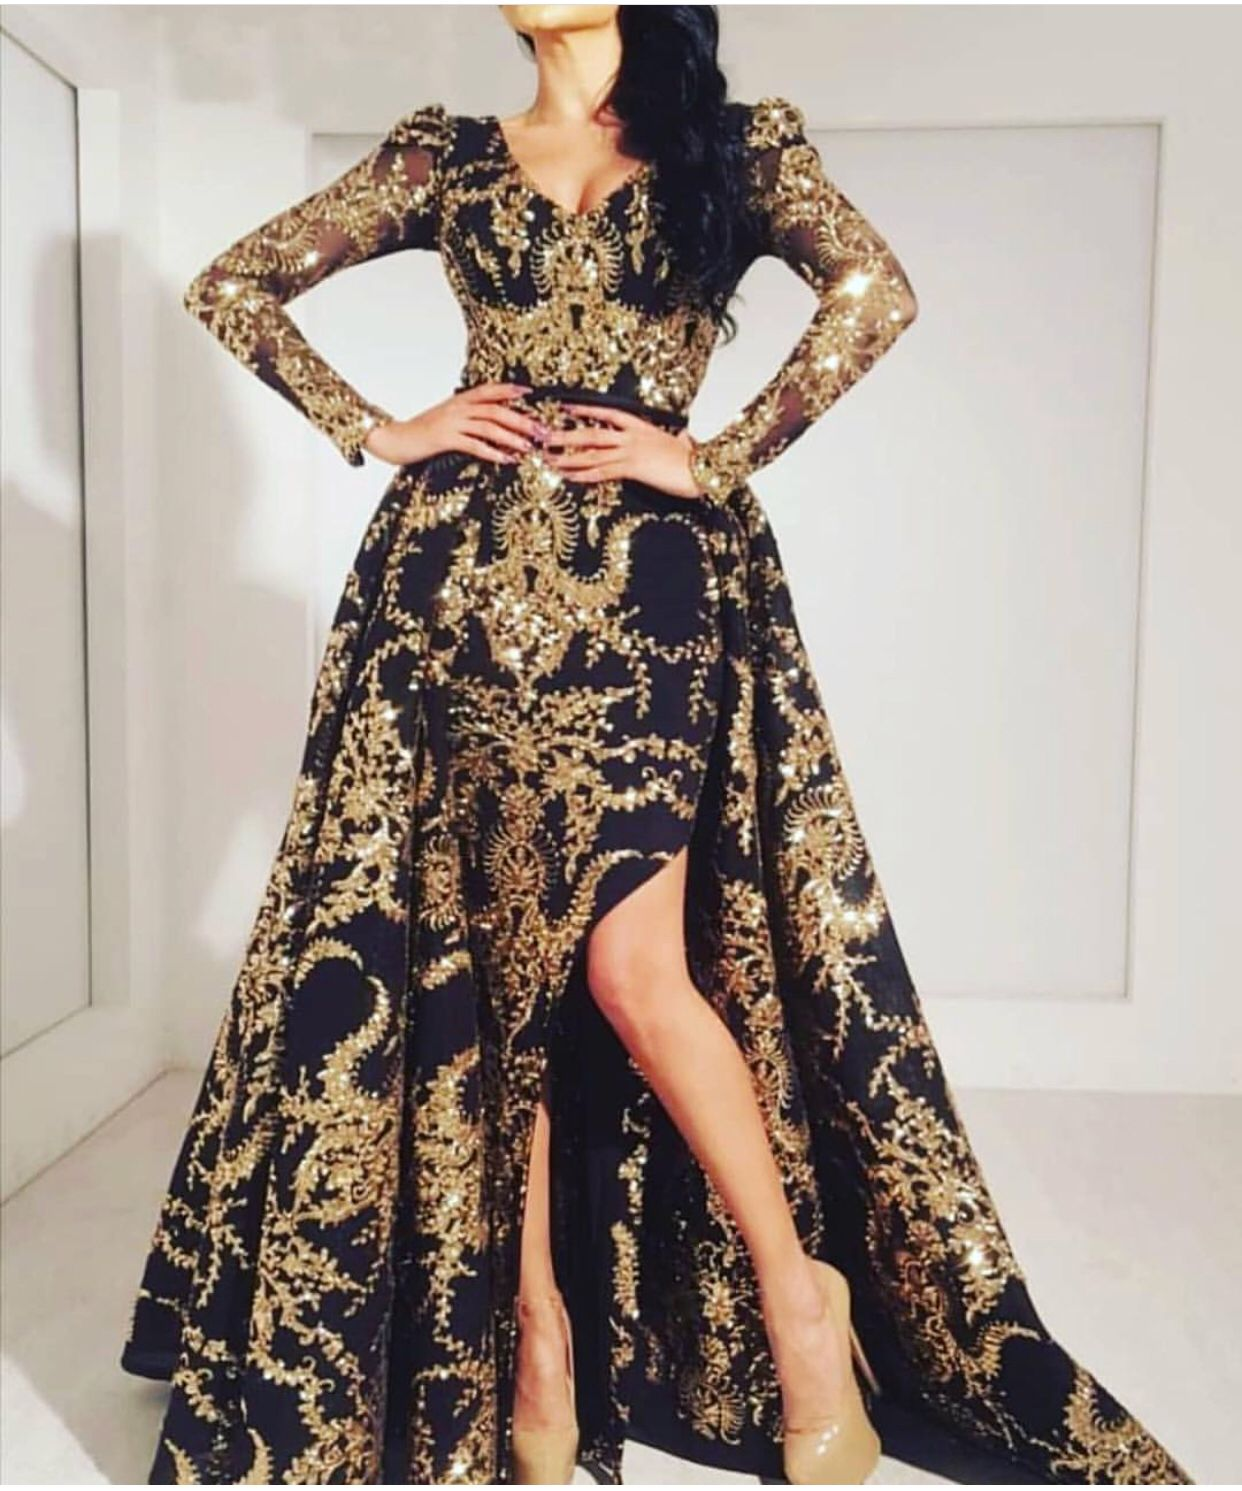 44+ Black and gold dress ideas